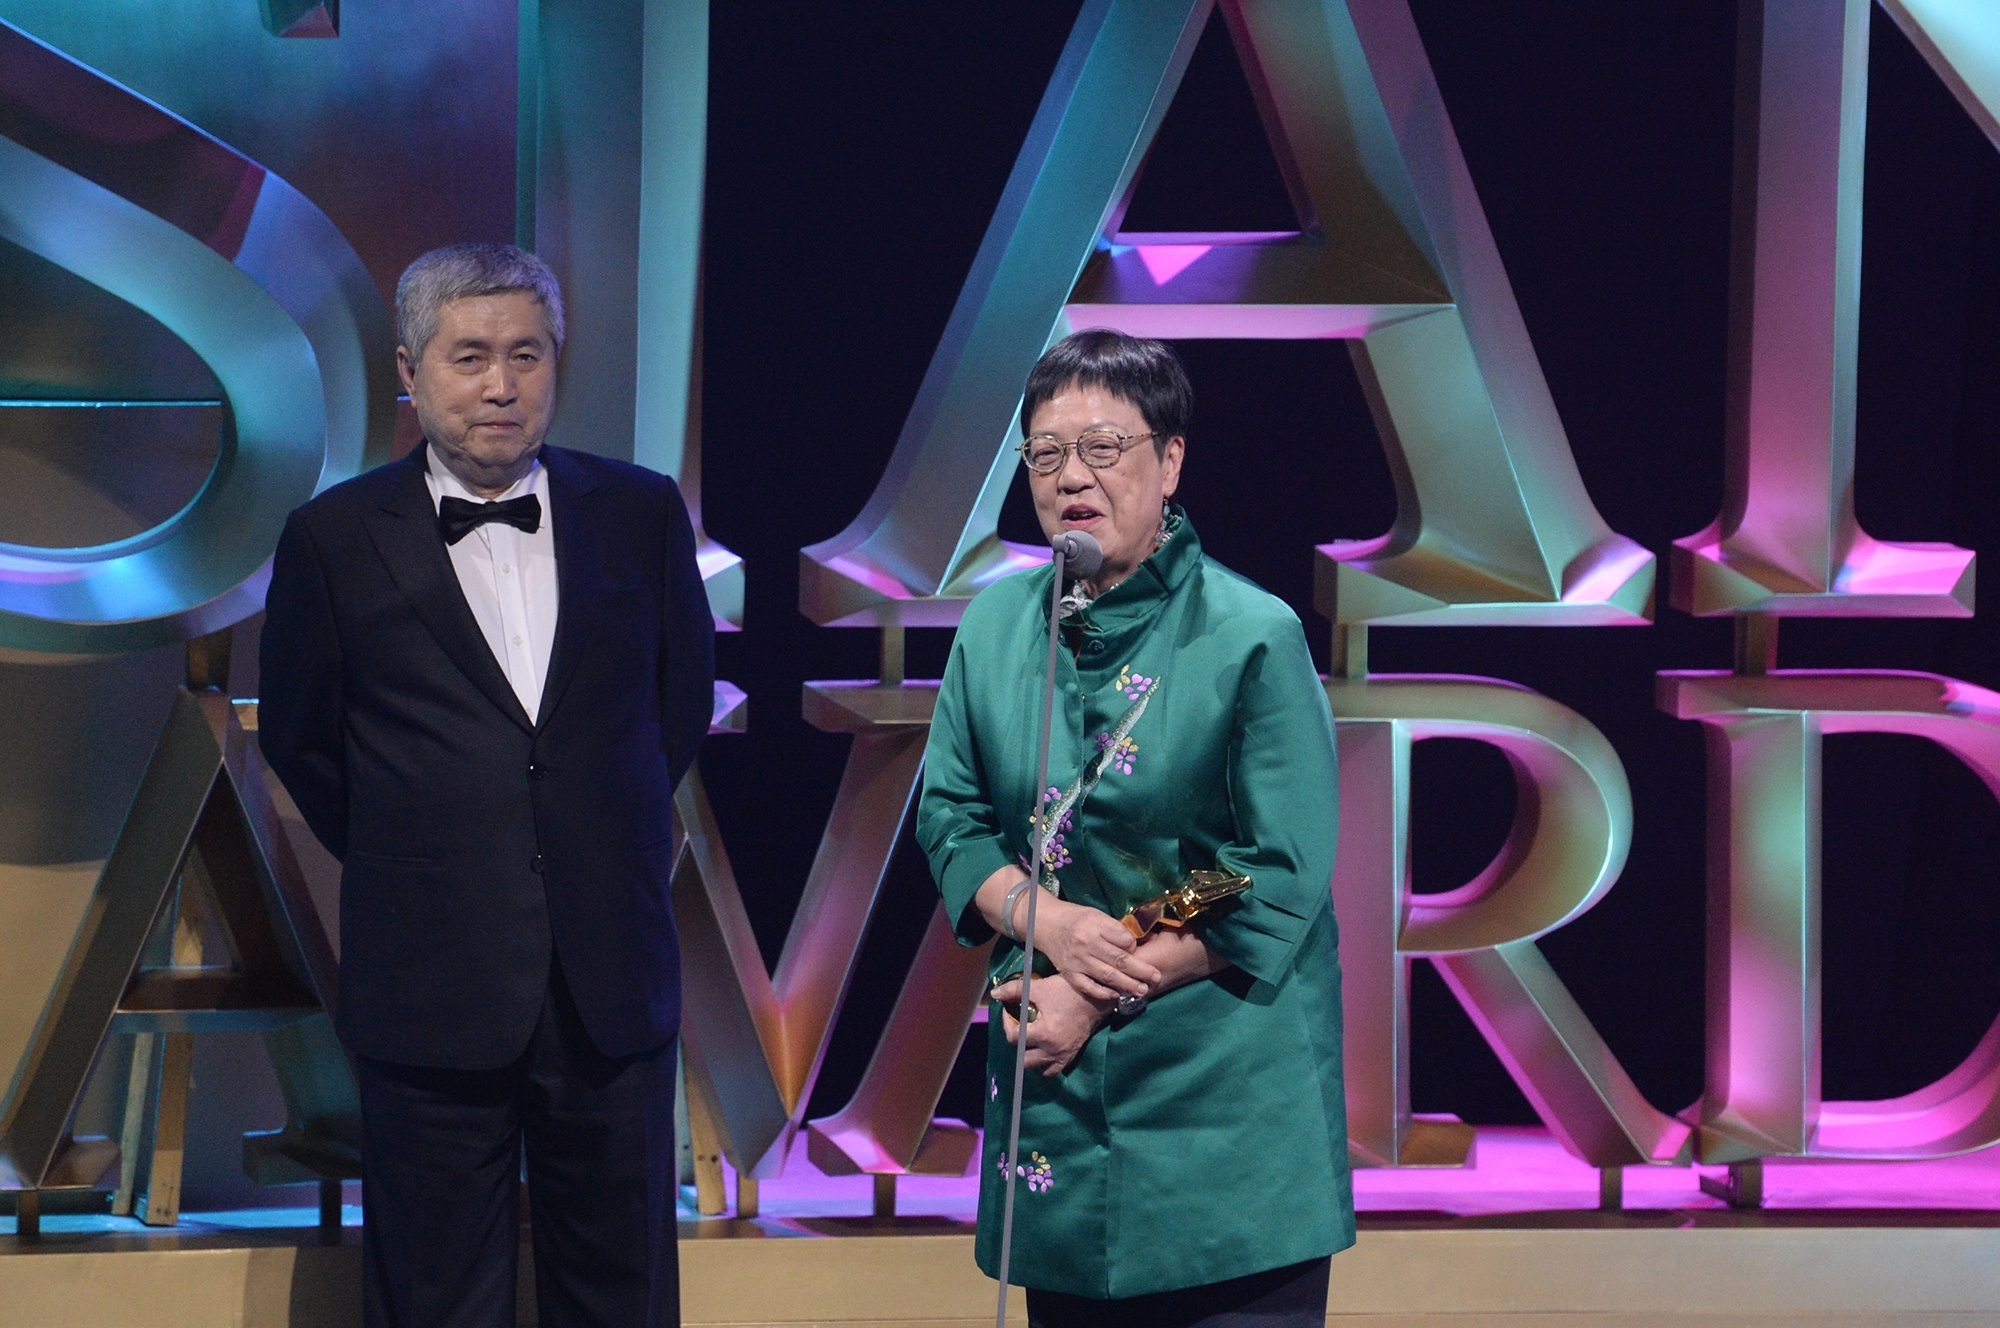 Renowned director and Lifetime Achievement Award recipient Im Kwon-taek hands over the Best Director award to Ann Hui for 'The Golden Era' at the 9th Asian Film Awards